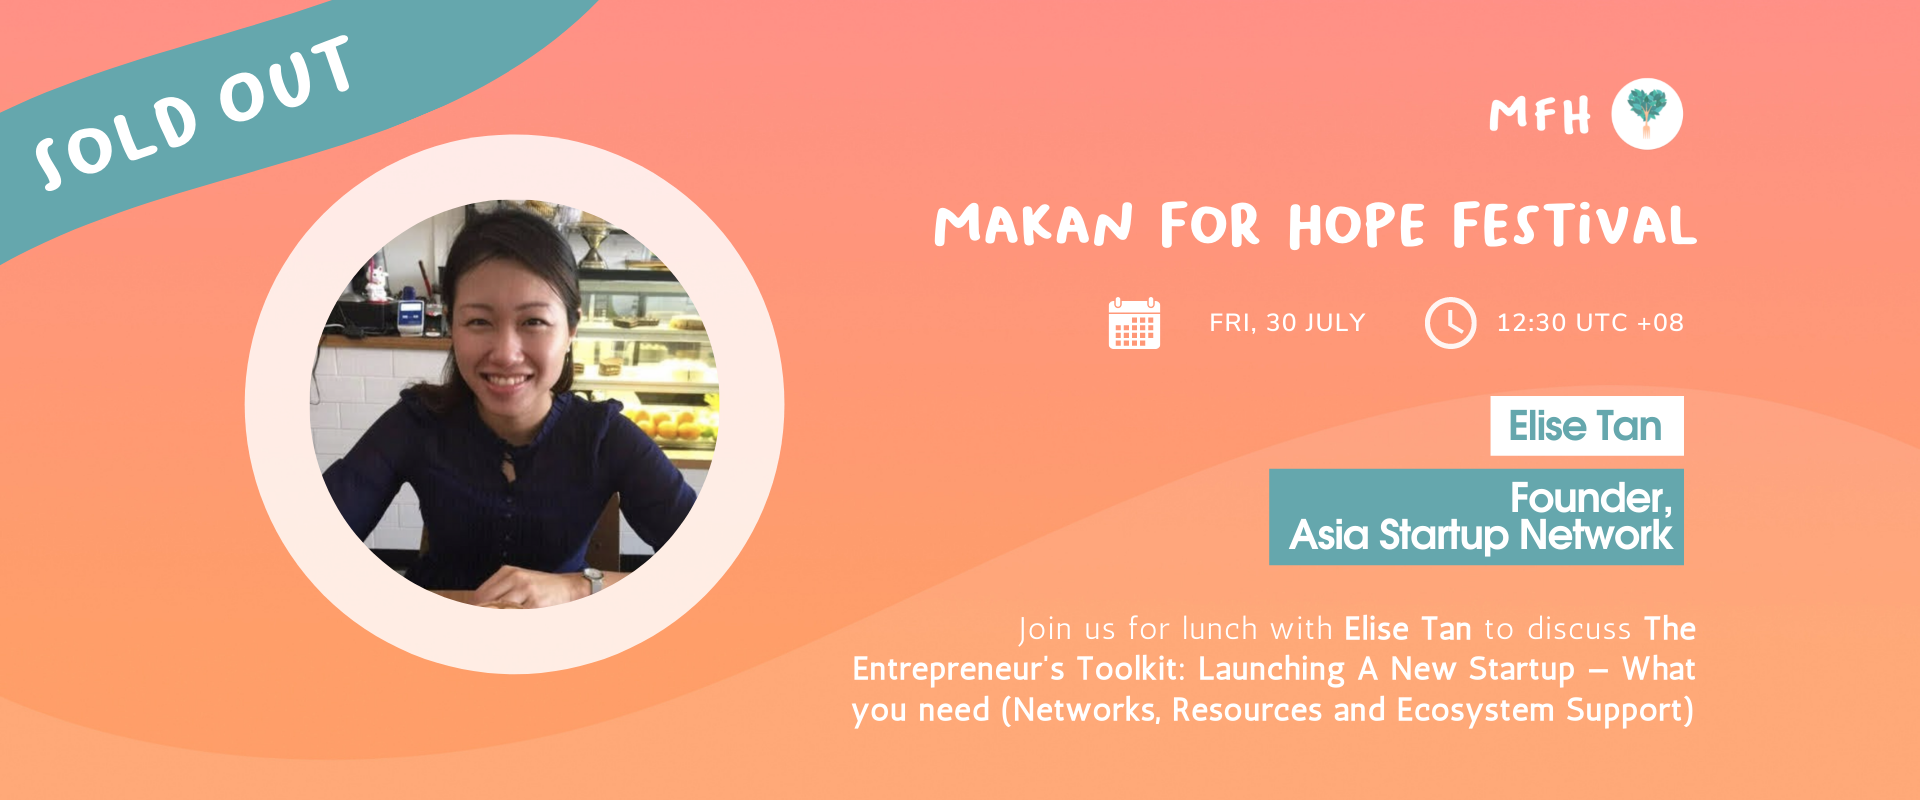 [SOLD OUT!] Elise Tan - The Entrepreneur's Toolkit: Launching A New Startup — What You Need (Networks, Resources and Ecosystem Support) Banner Image